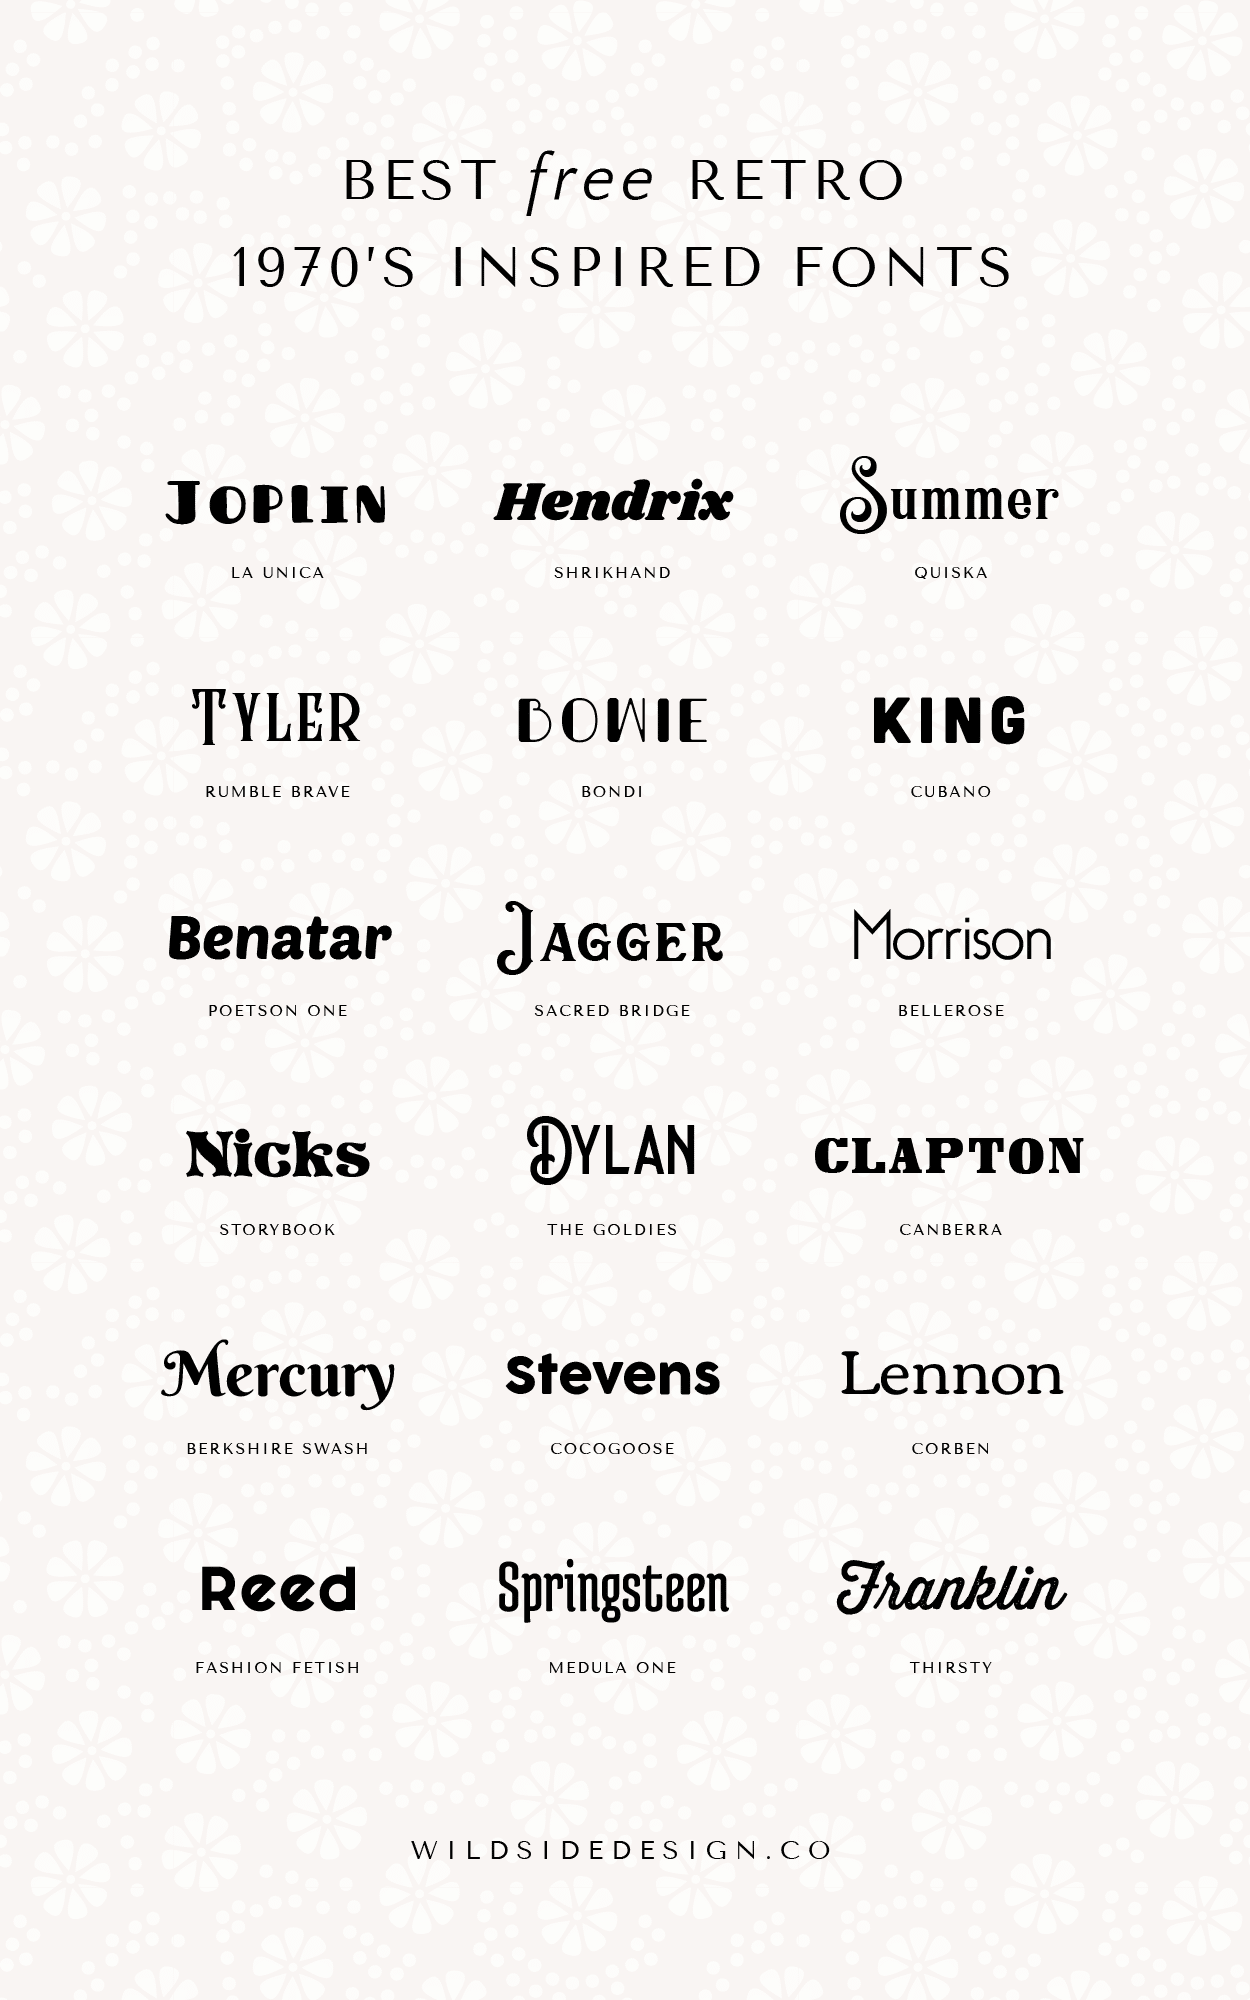 The Best Free Retro 1970's Inspired Fonts | Wild Side Design Co.